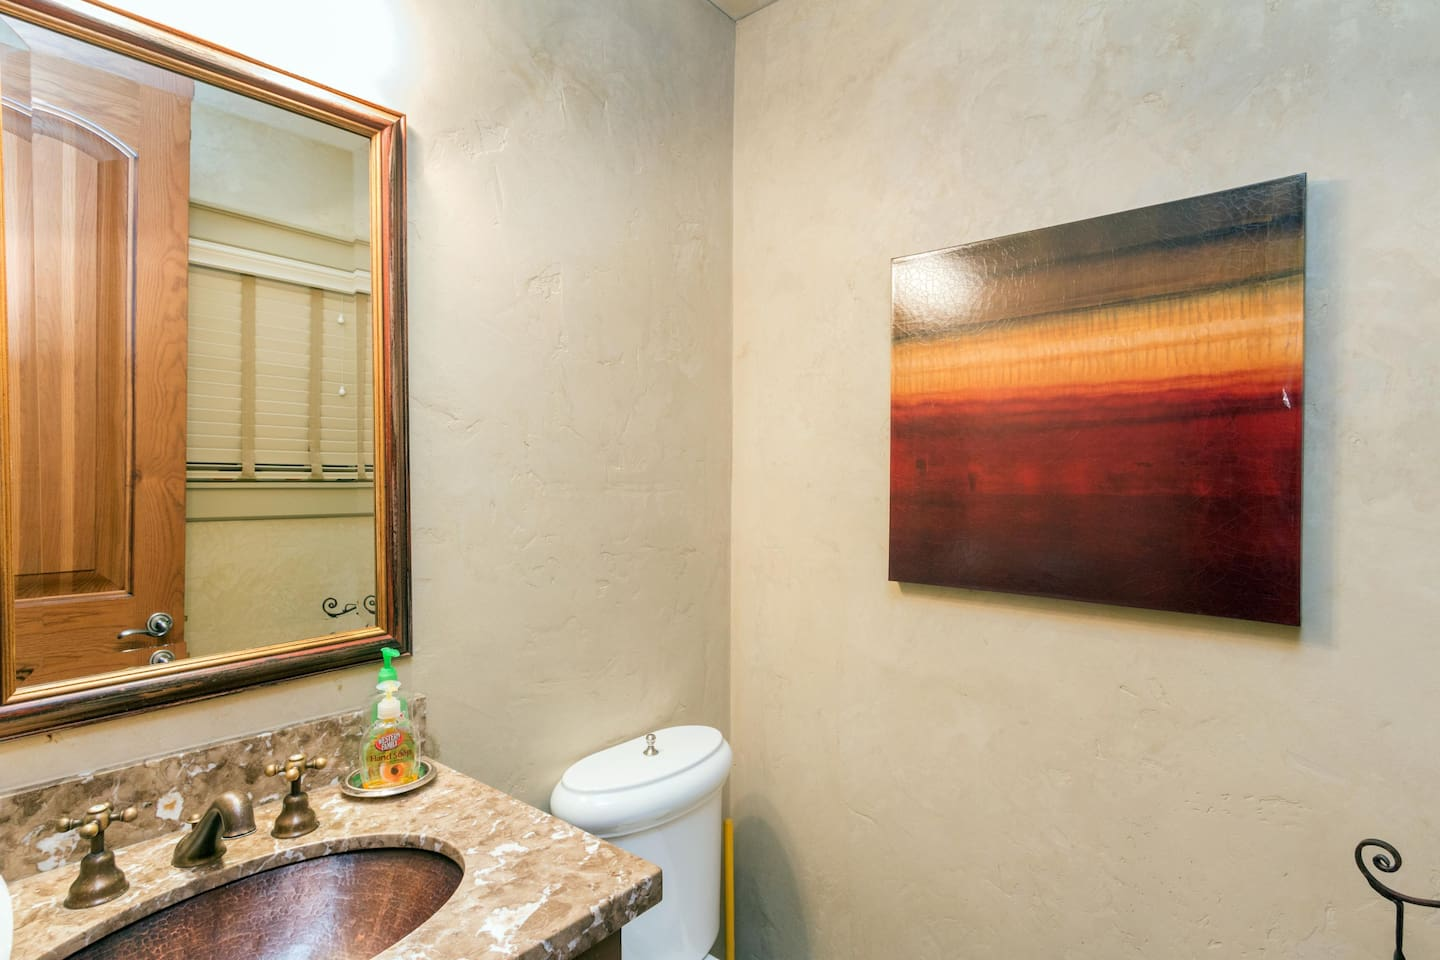 211 A SOUTH OAK - Luxury Home, Downtown Telluride, GREAT Location, Steps away from the GONDOLA!